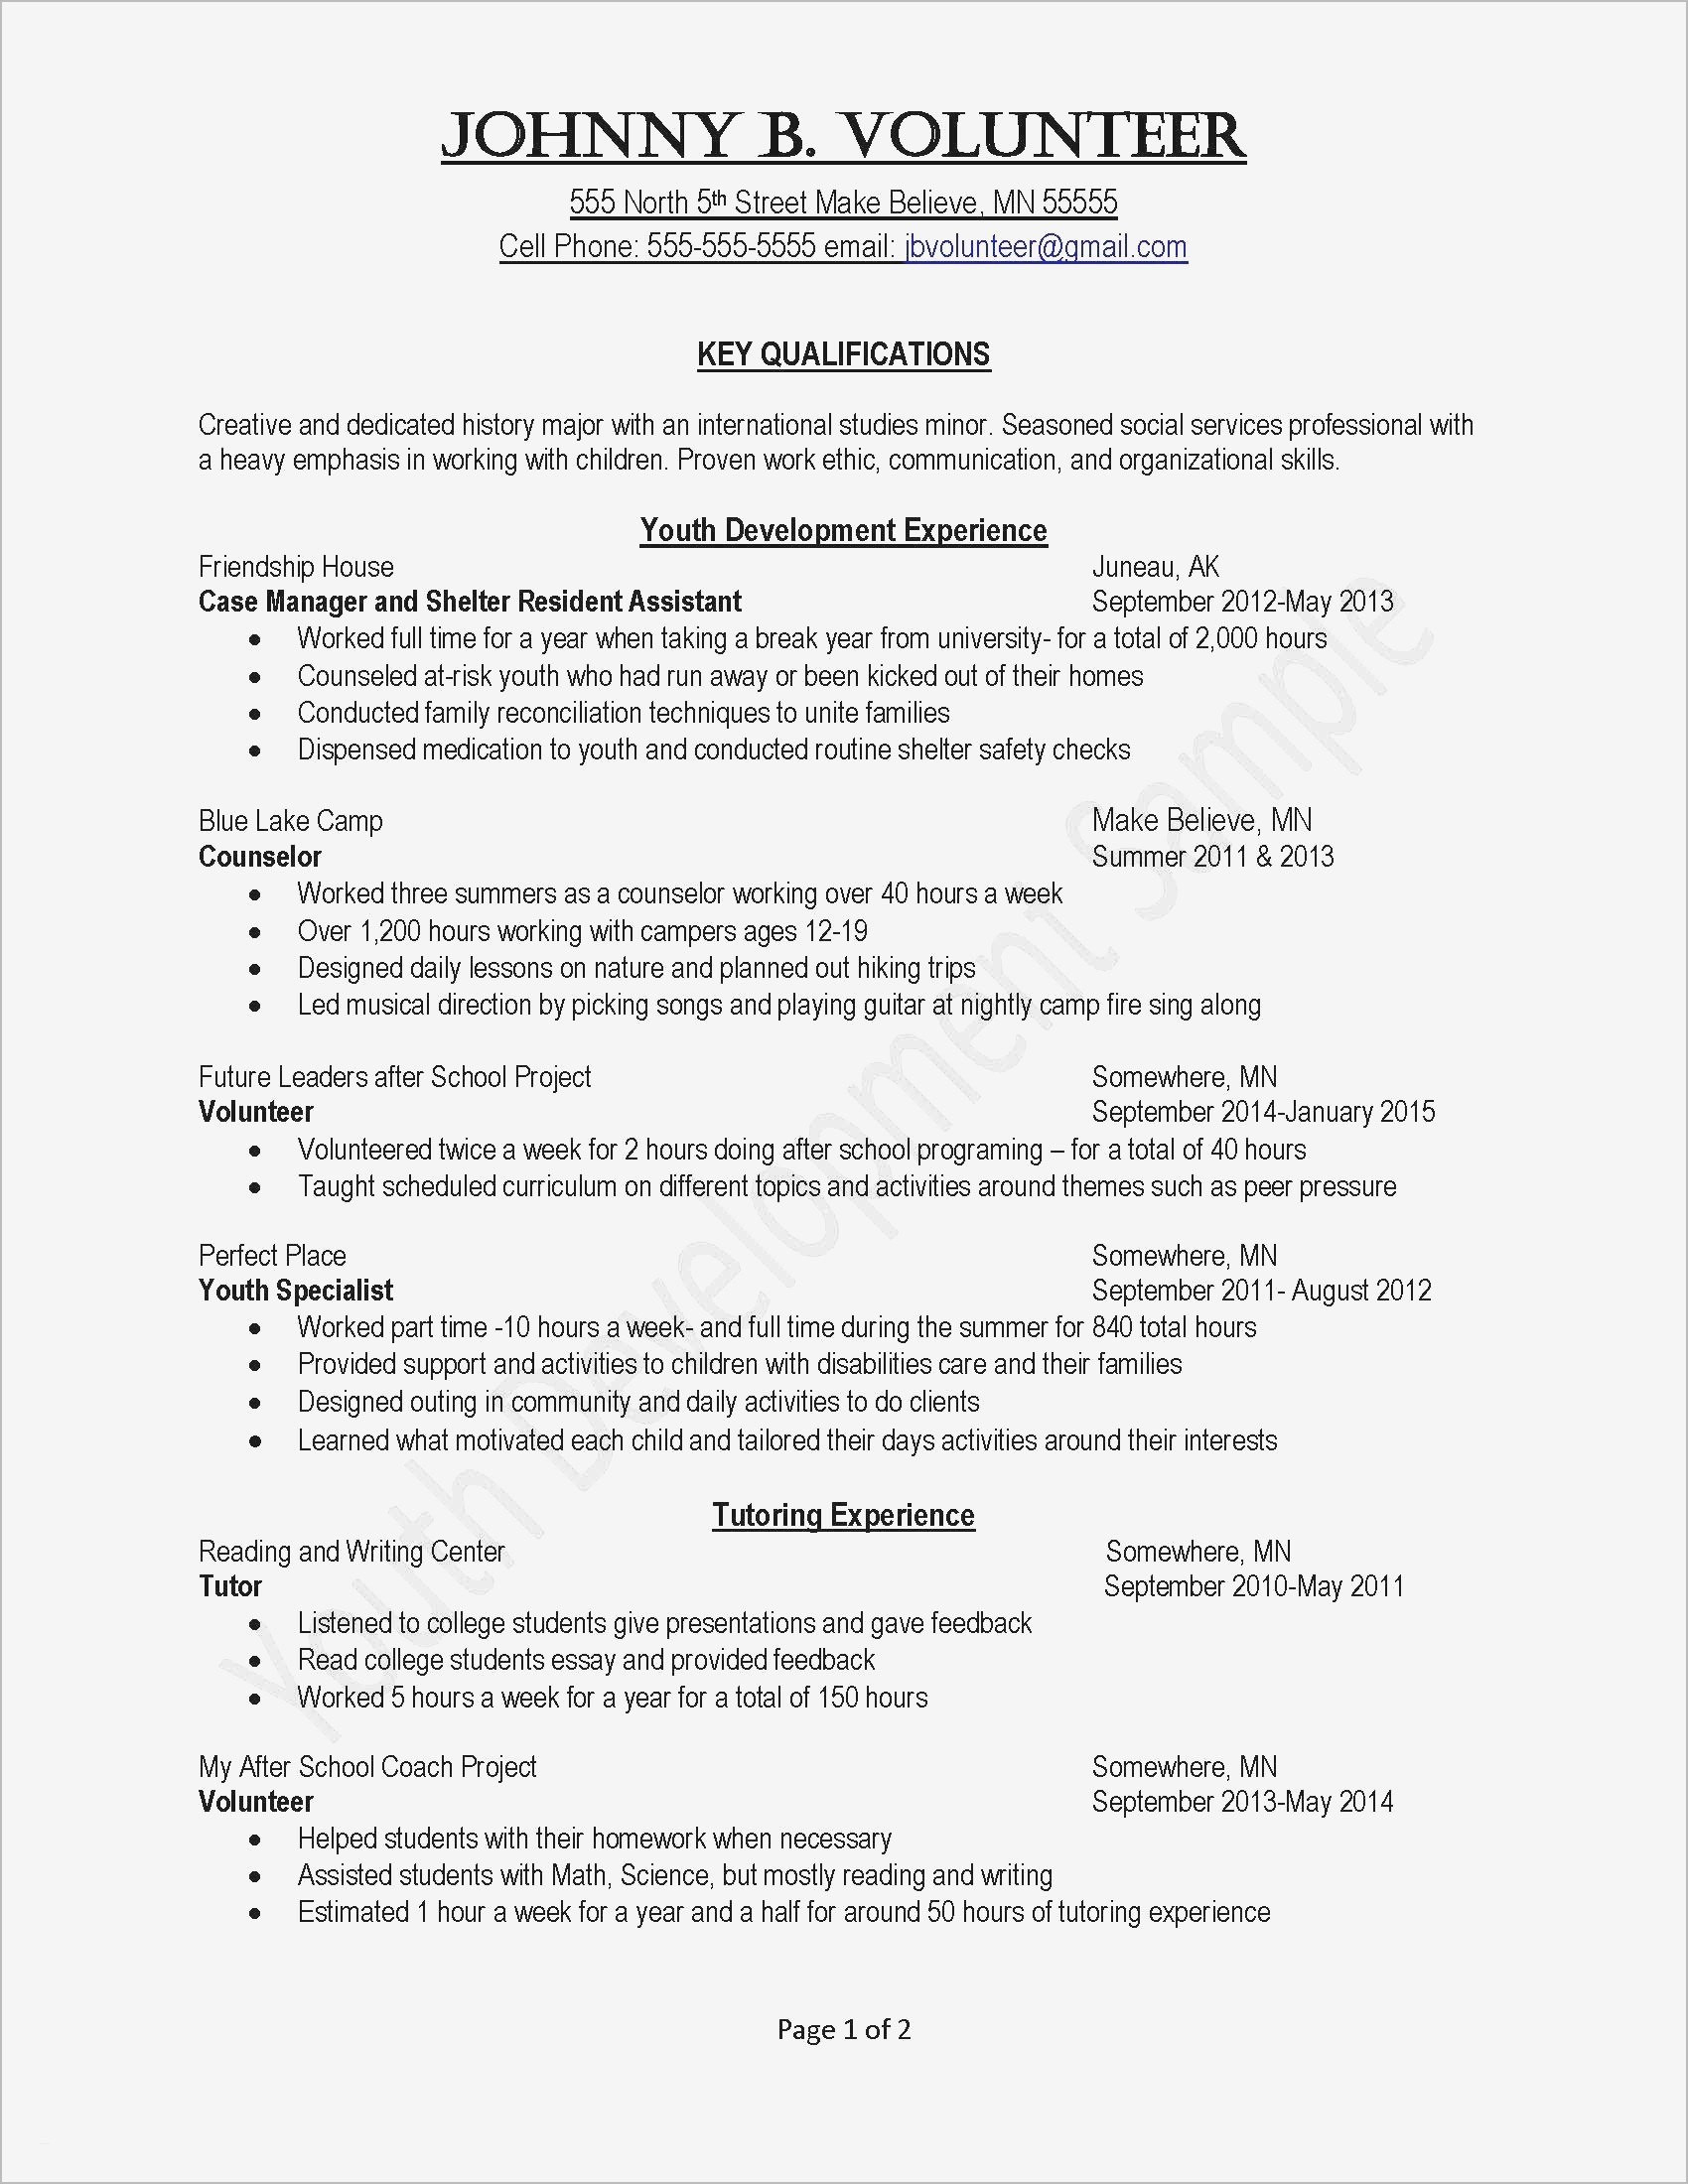 Amazing Cover Letter Template - Leadership Resume Template Best Job Fer Letter Template Us Copy